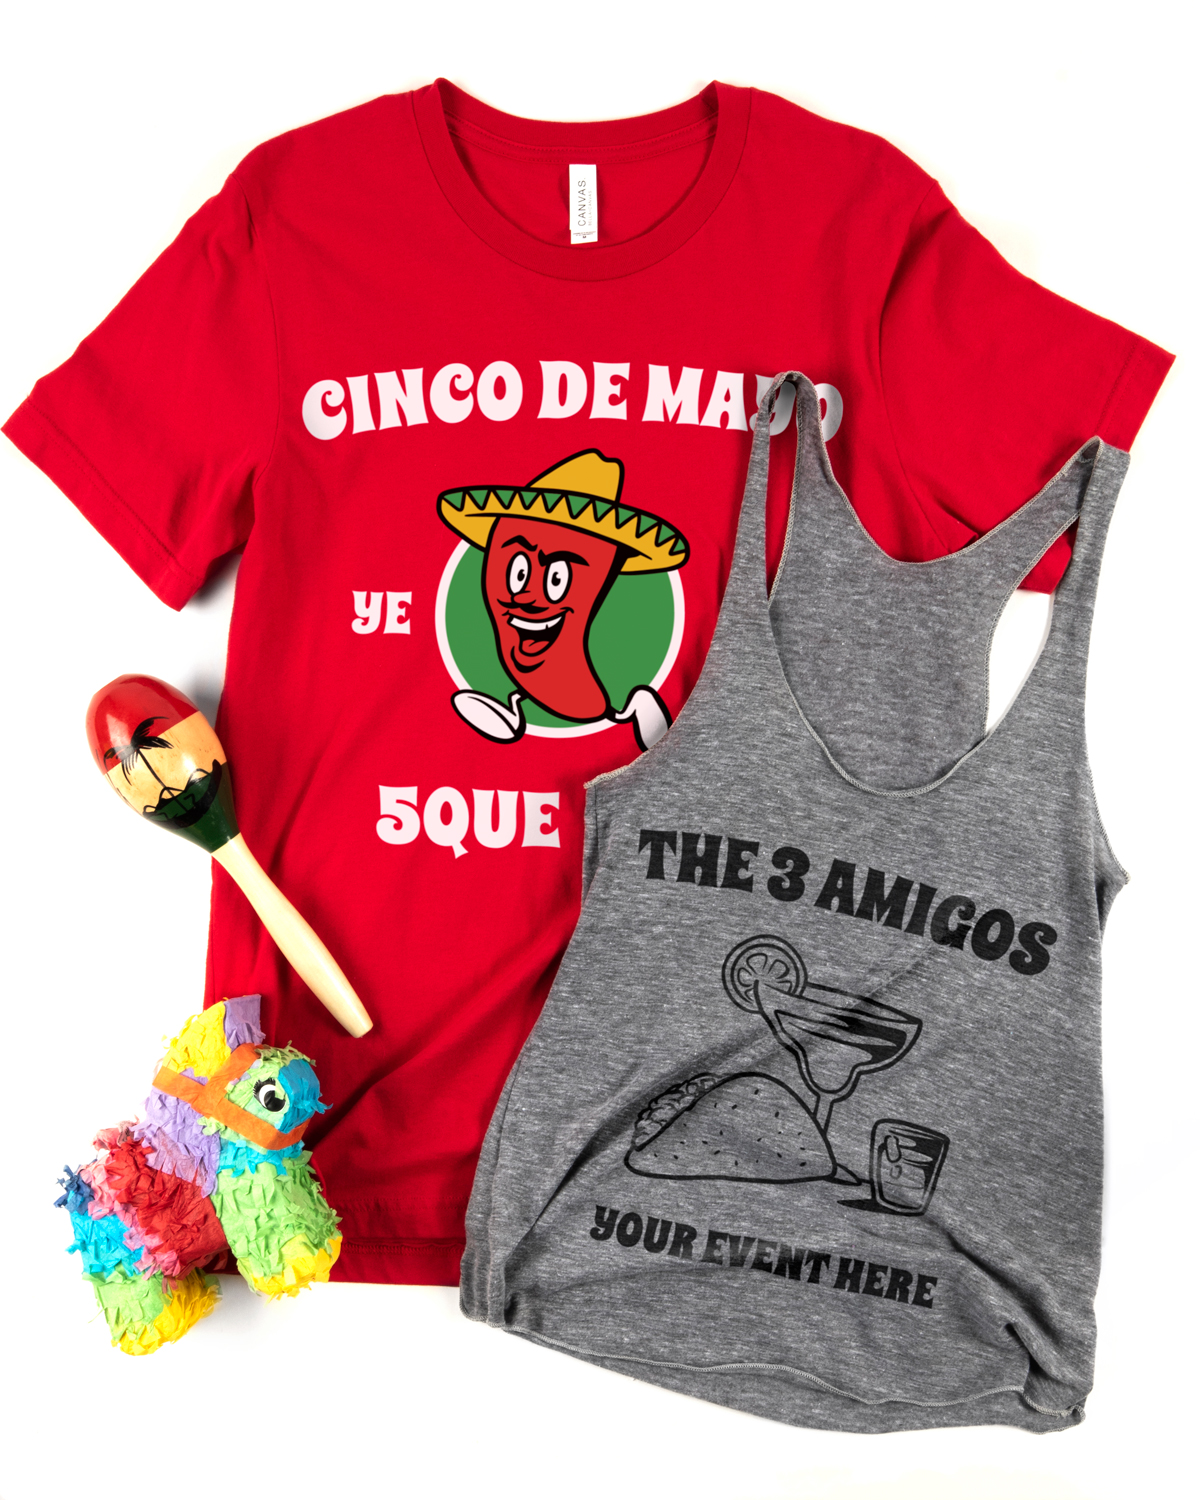 Two customizable Cinco de Mayo t-shirt design templates printed on a red men's t-shirt and an athletic grey woman's tank top.